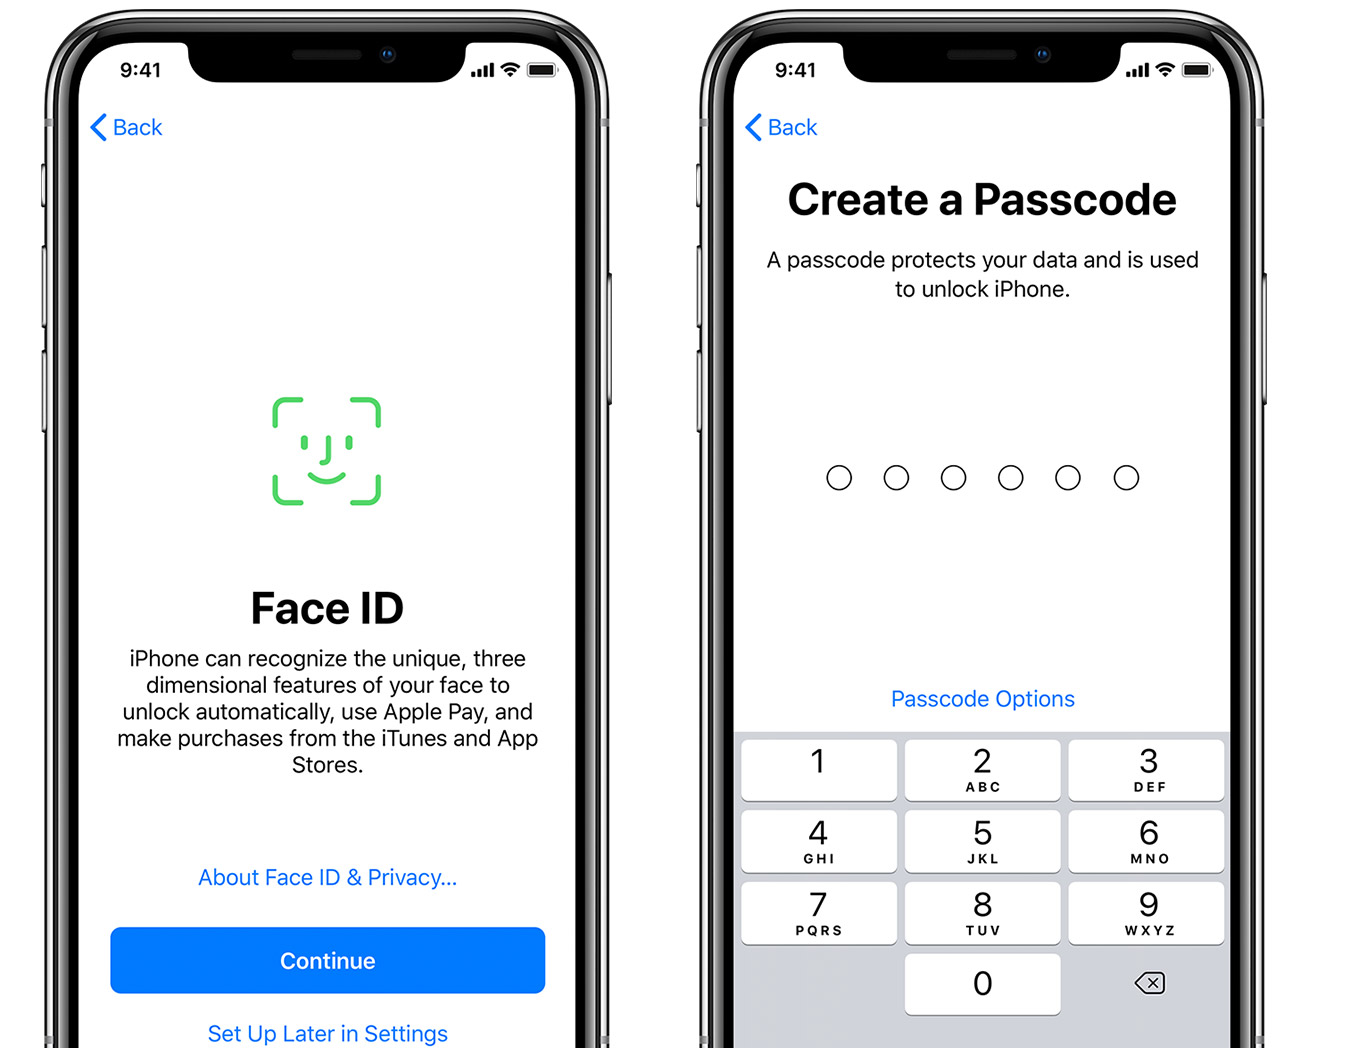 FaceTime and Create a Passcode screens on iPhone